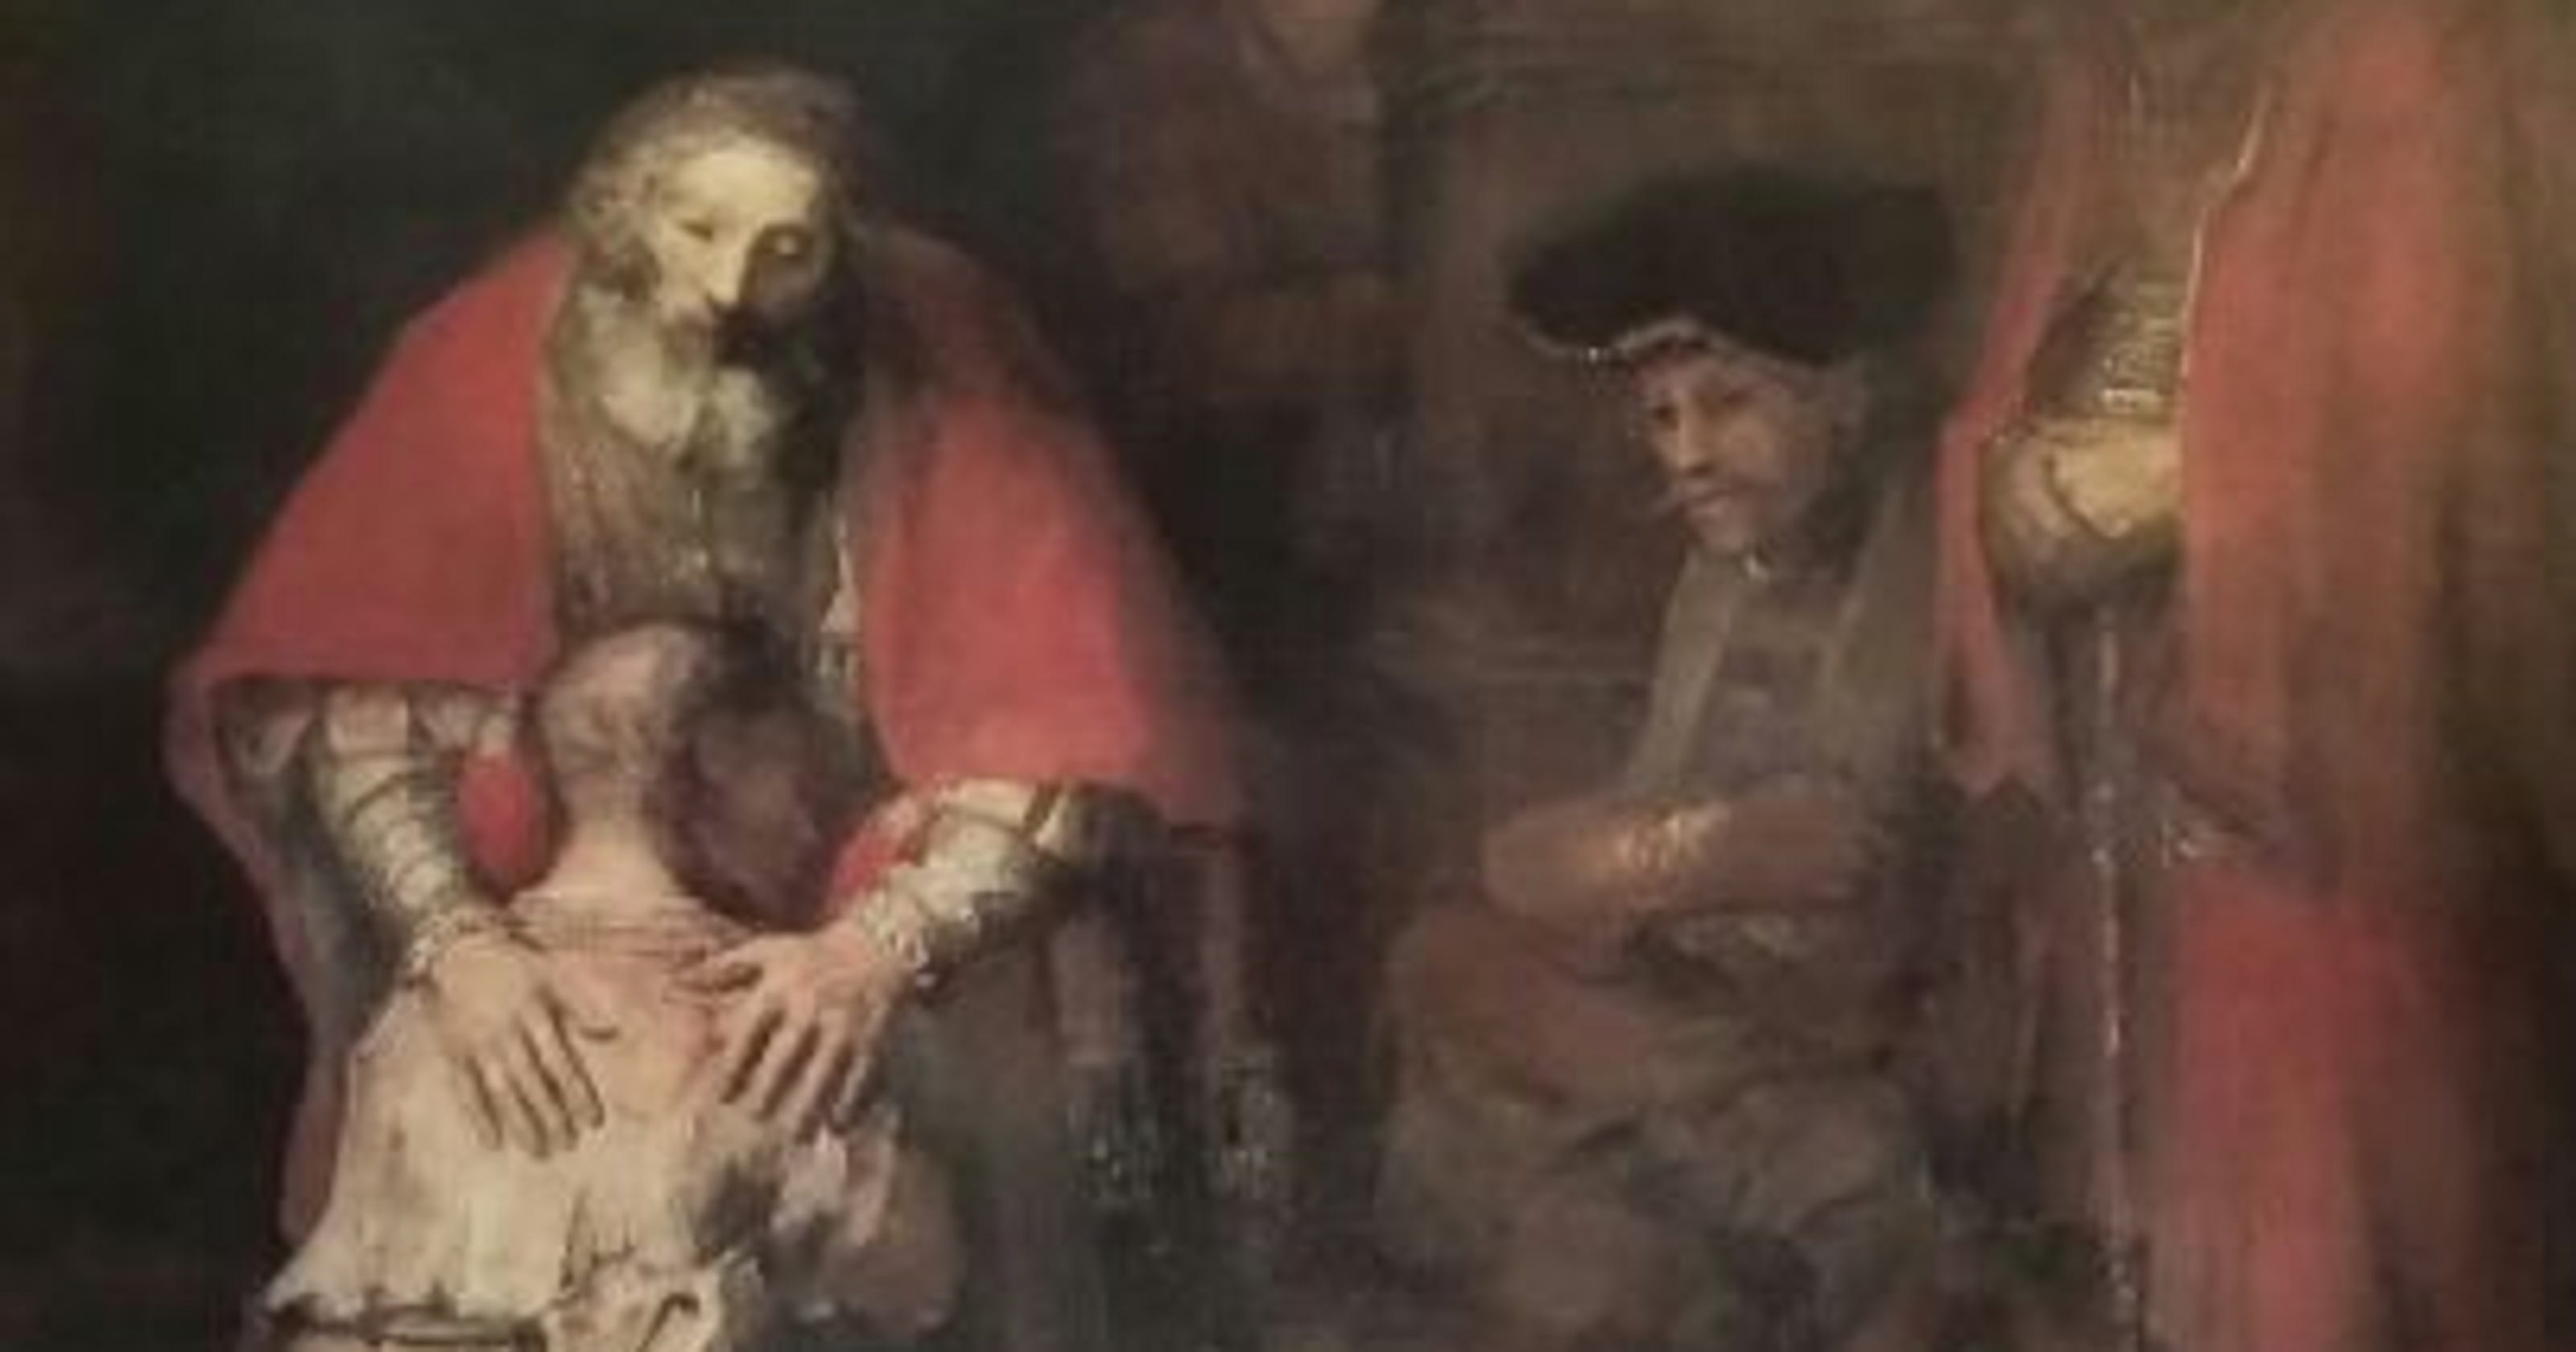 Parable of the prodigal son resonates